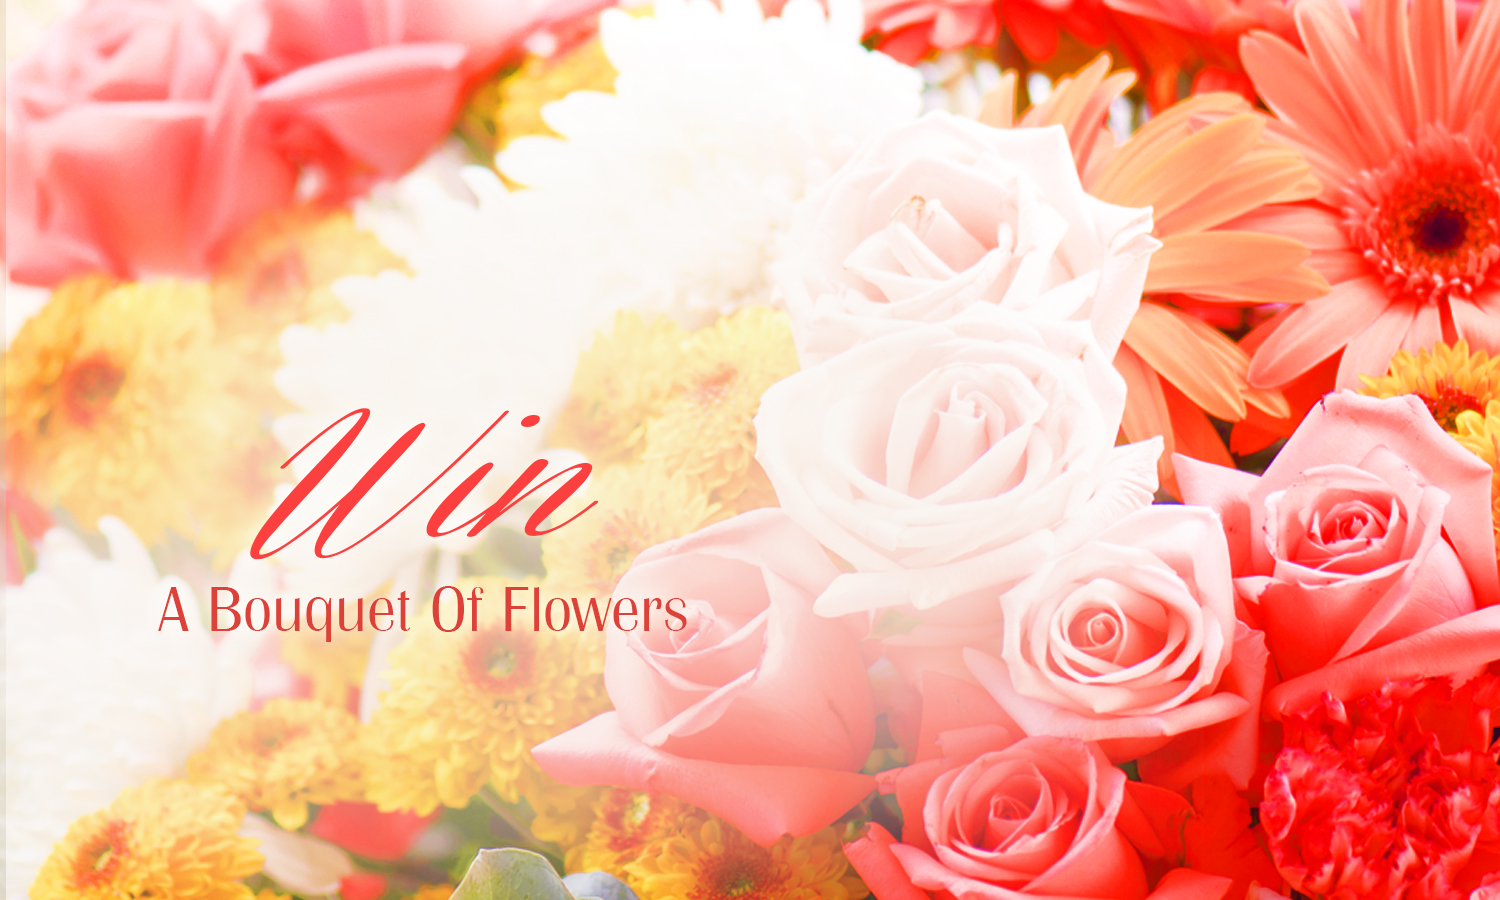 Win a bouquet of flowers free competitions winnersville win a bouquet of flowers izmirmasajfo